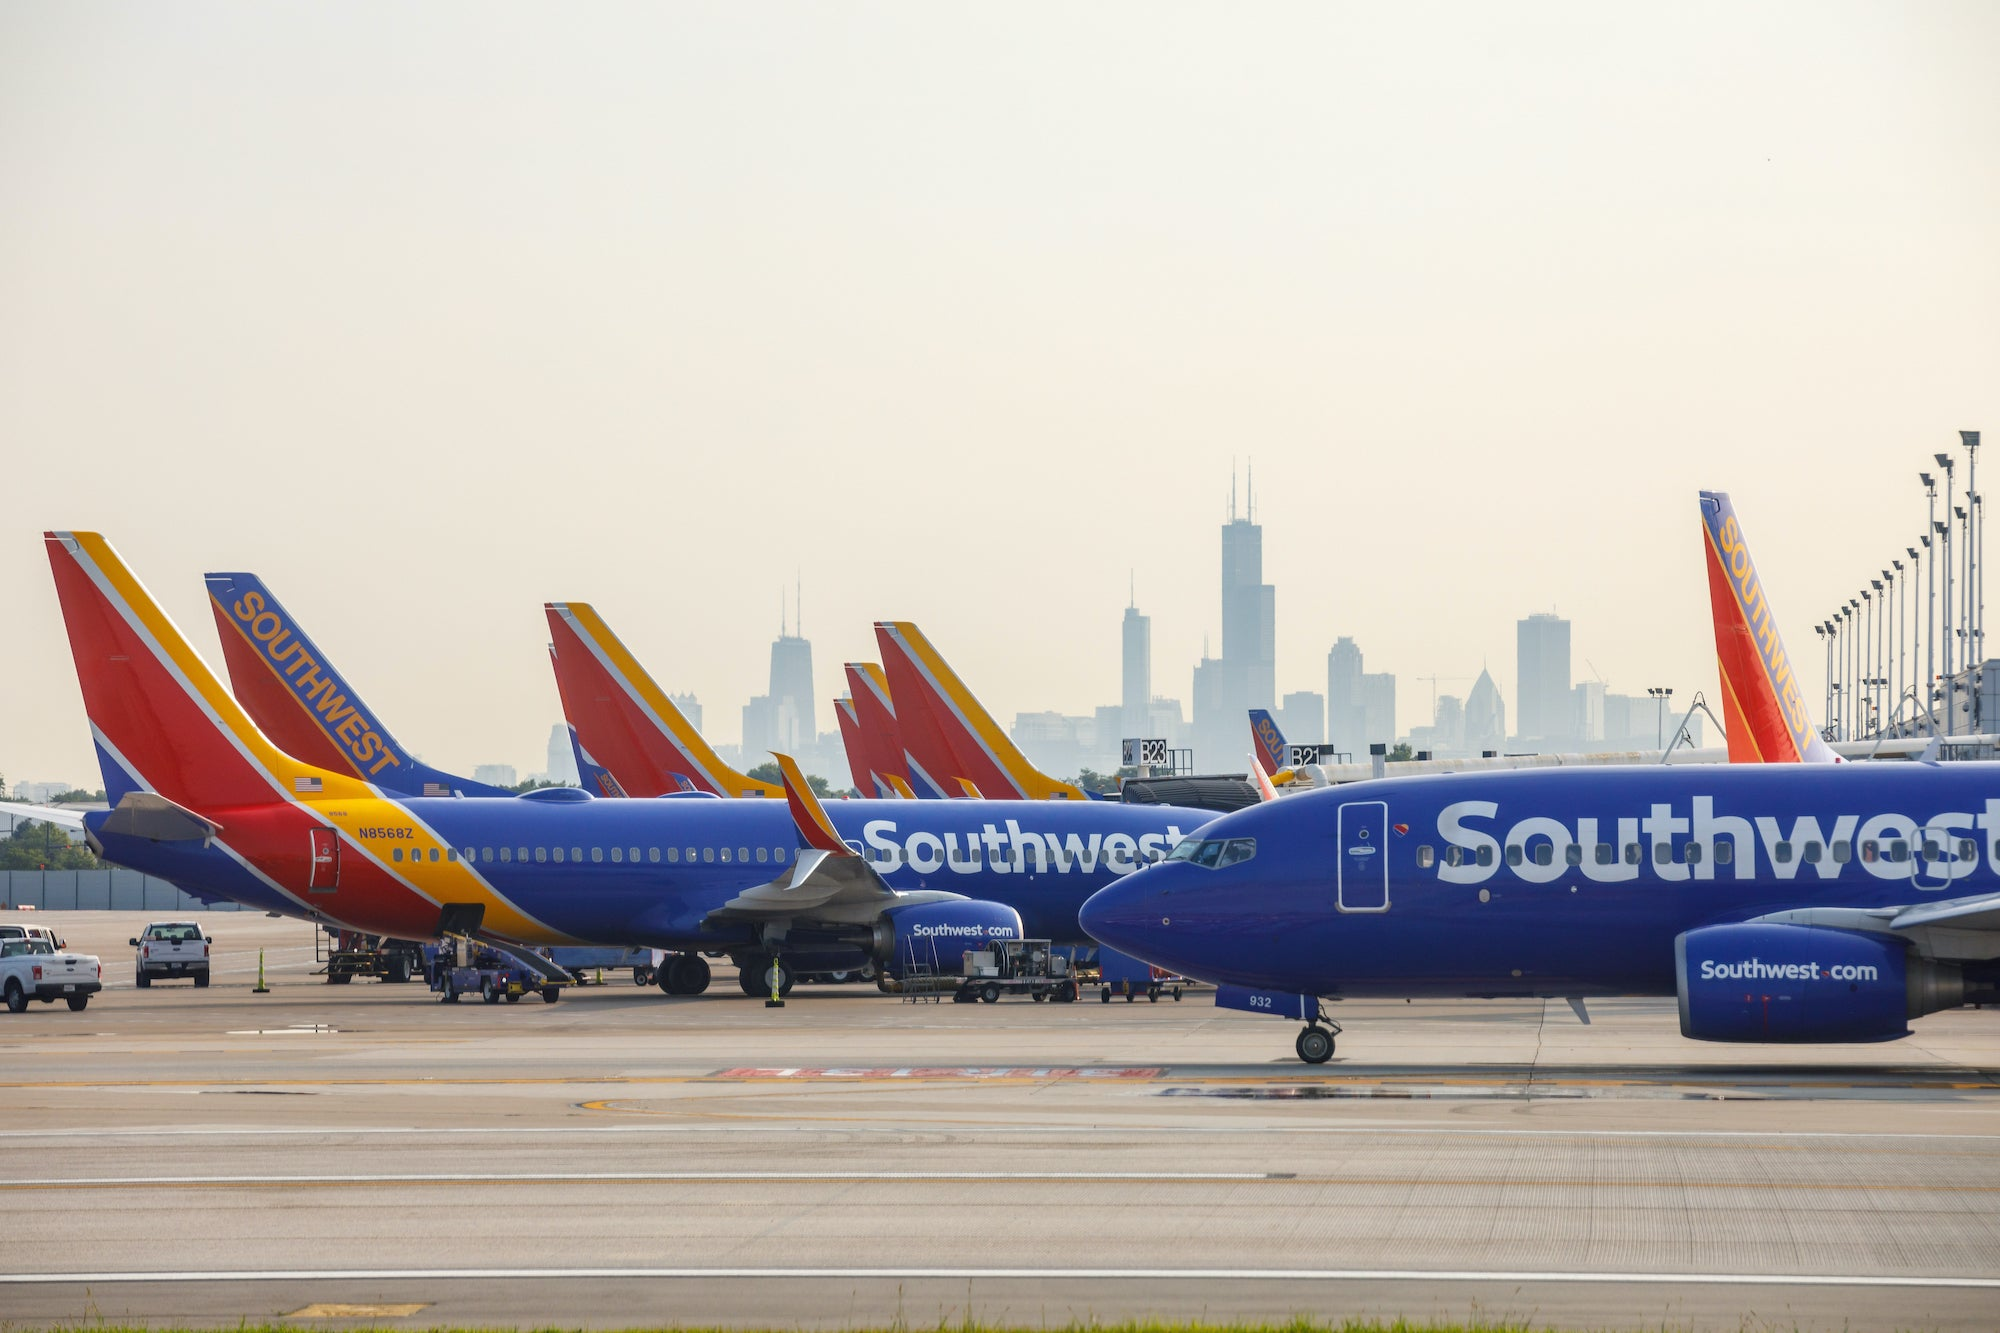 Airlines are changing schedules; here's how to handle inconvenient new flight times - The Points Guy